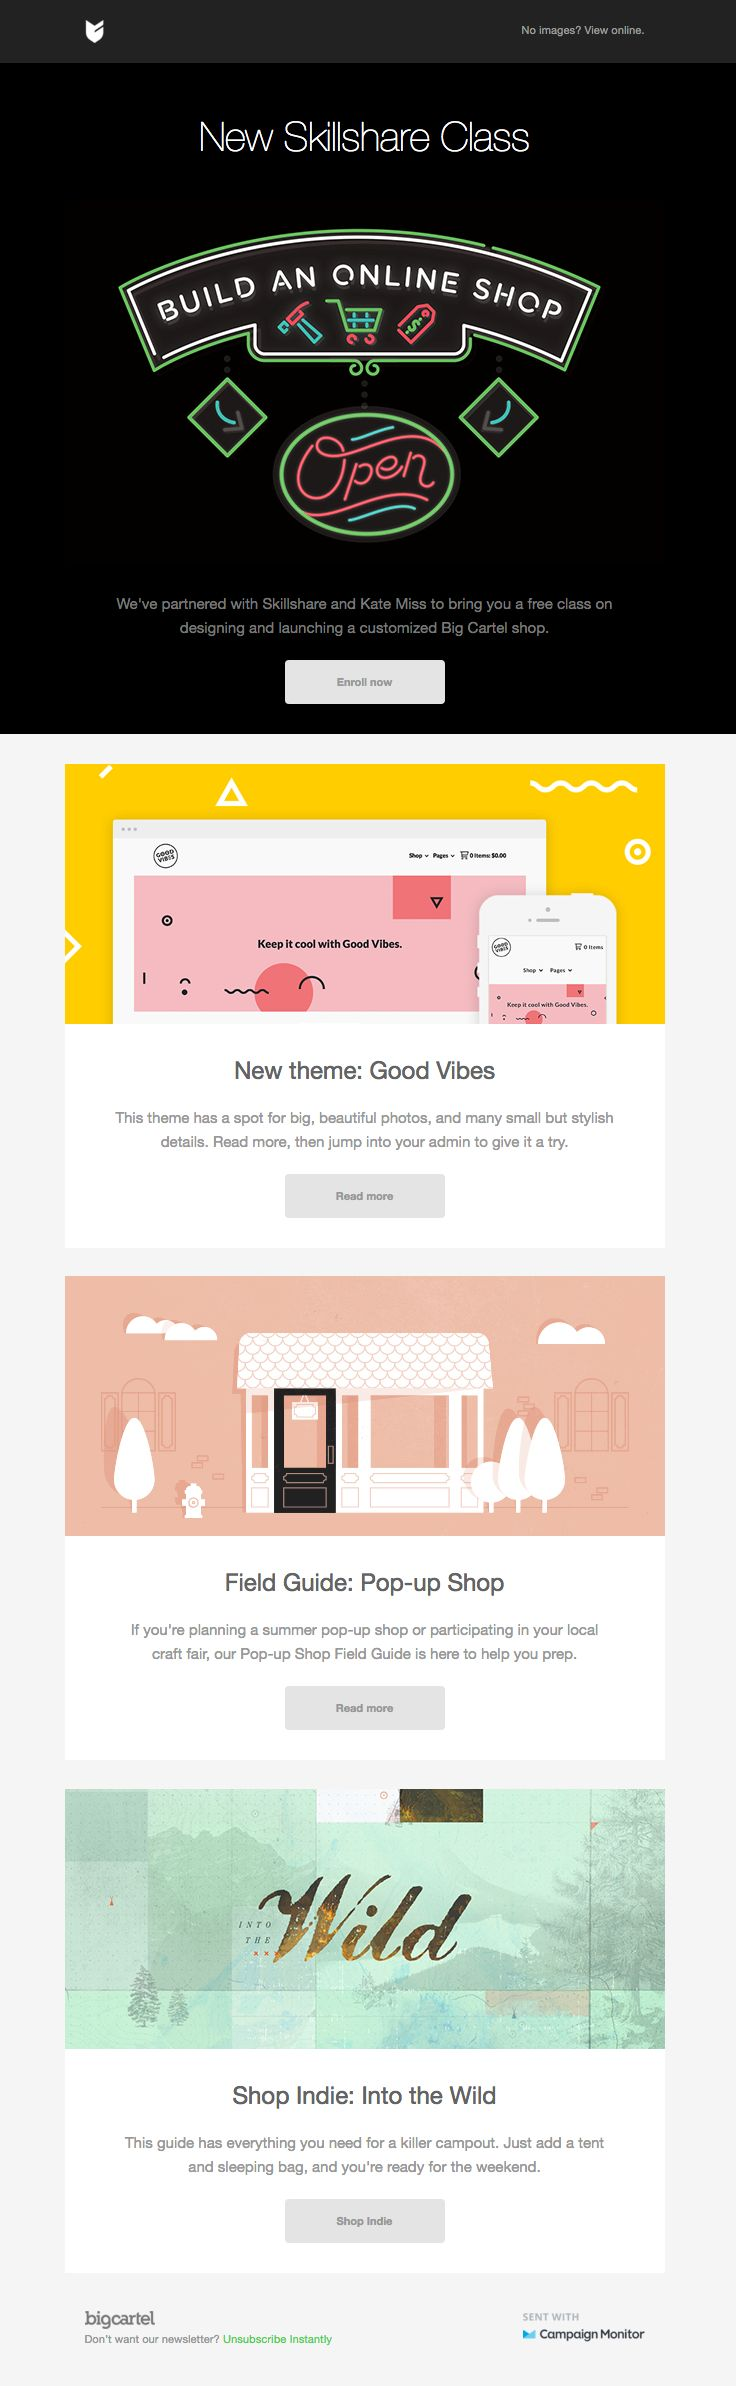 Best App Emails Images On Pinterest - Free invoices to email best online wine store